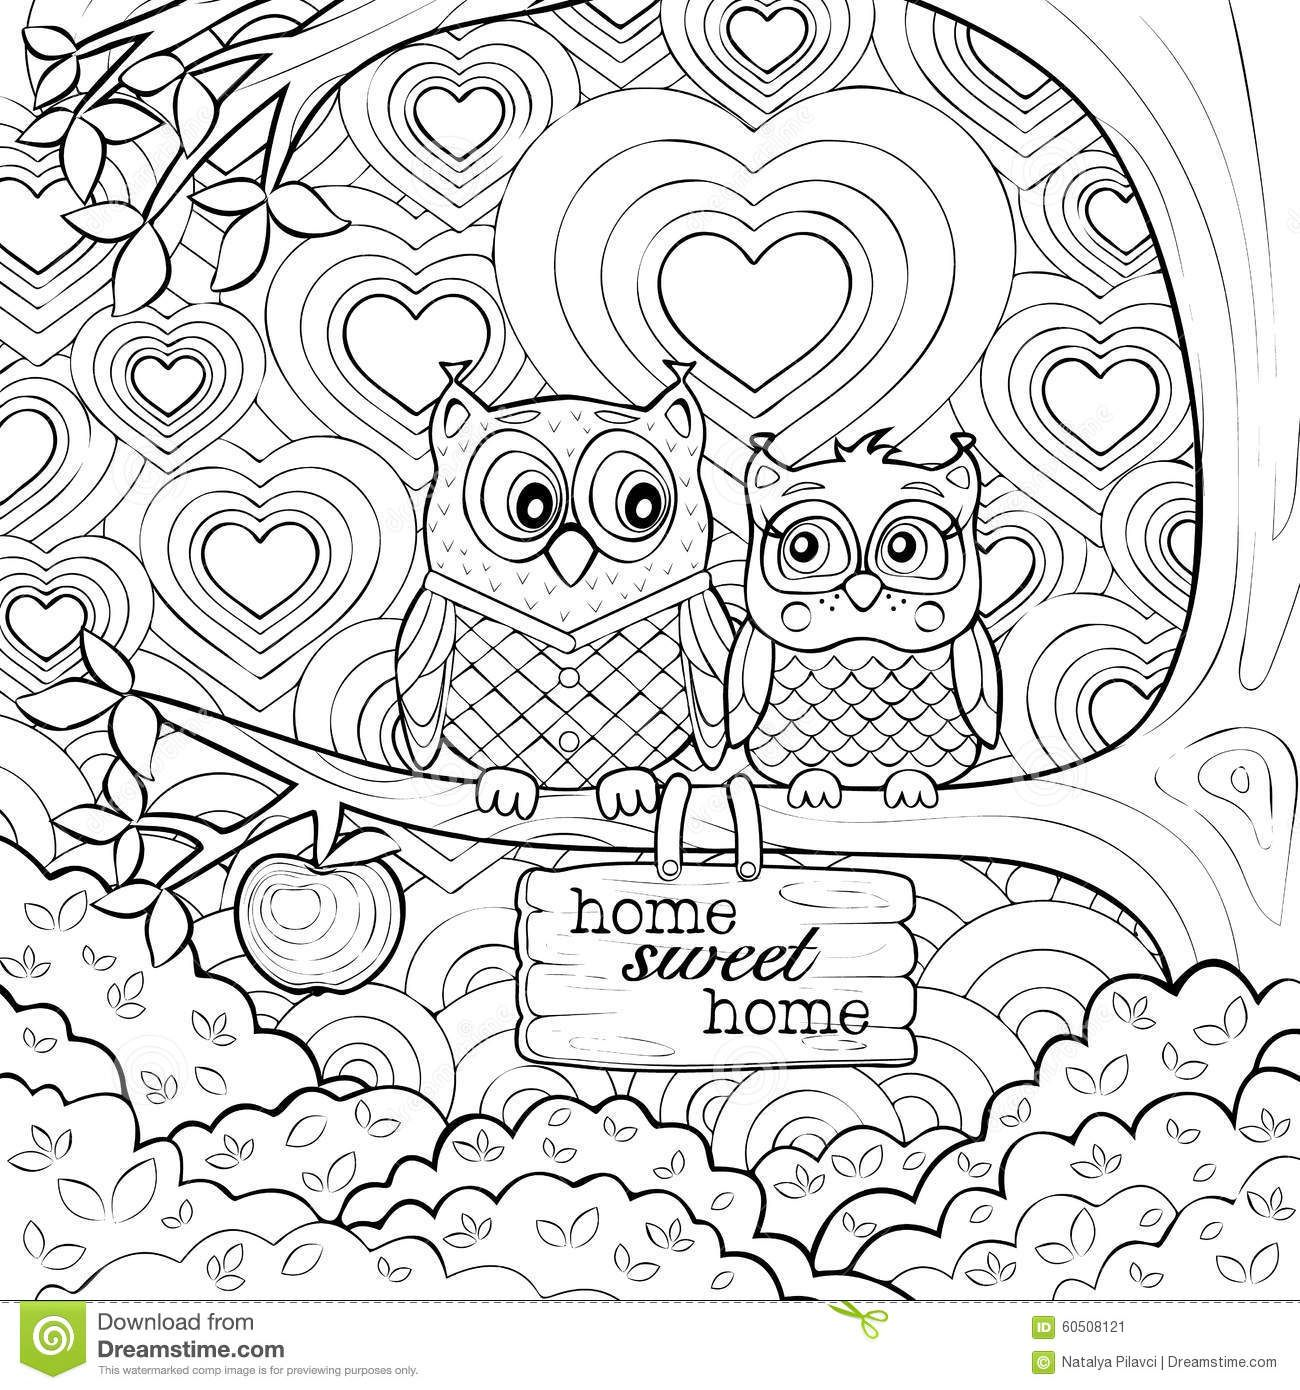 Cute Owls Art Therapy Coloring Page Owl Coloring Pages Art Therapy Coloring Book Mandala Coloring Pages